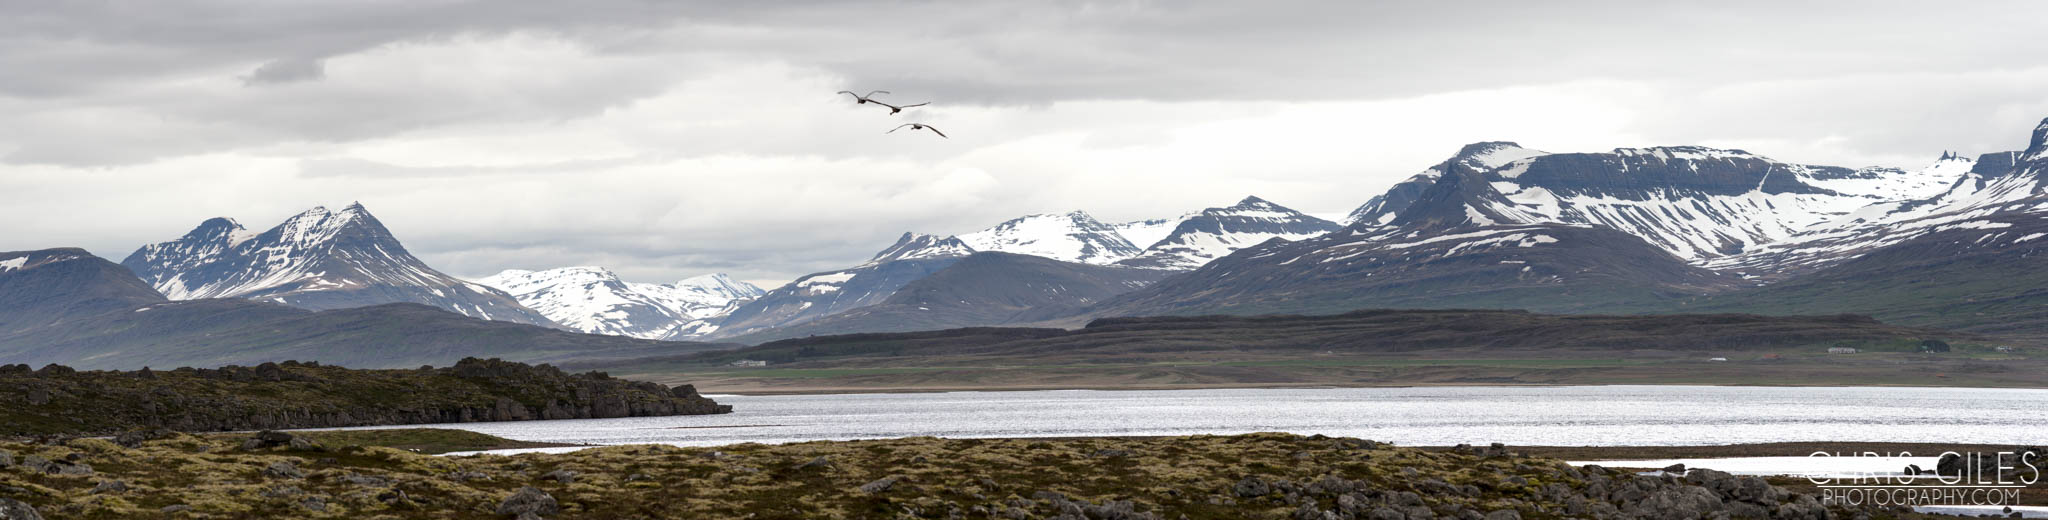 Panoramic photo of the Eastern Fjords in Iceland - Pentax 645z